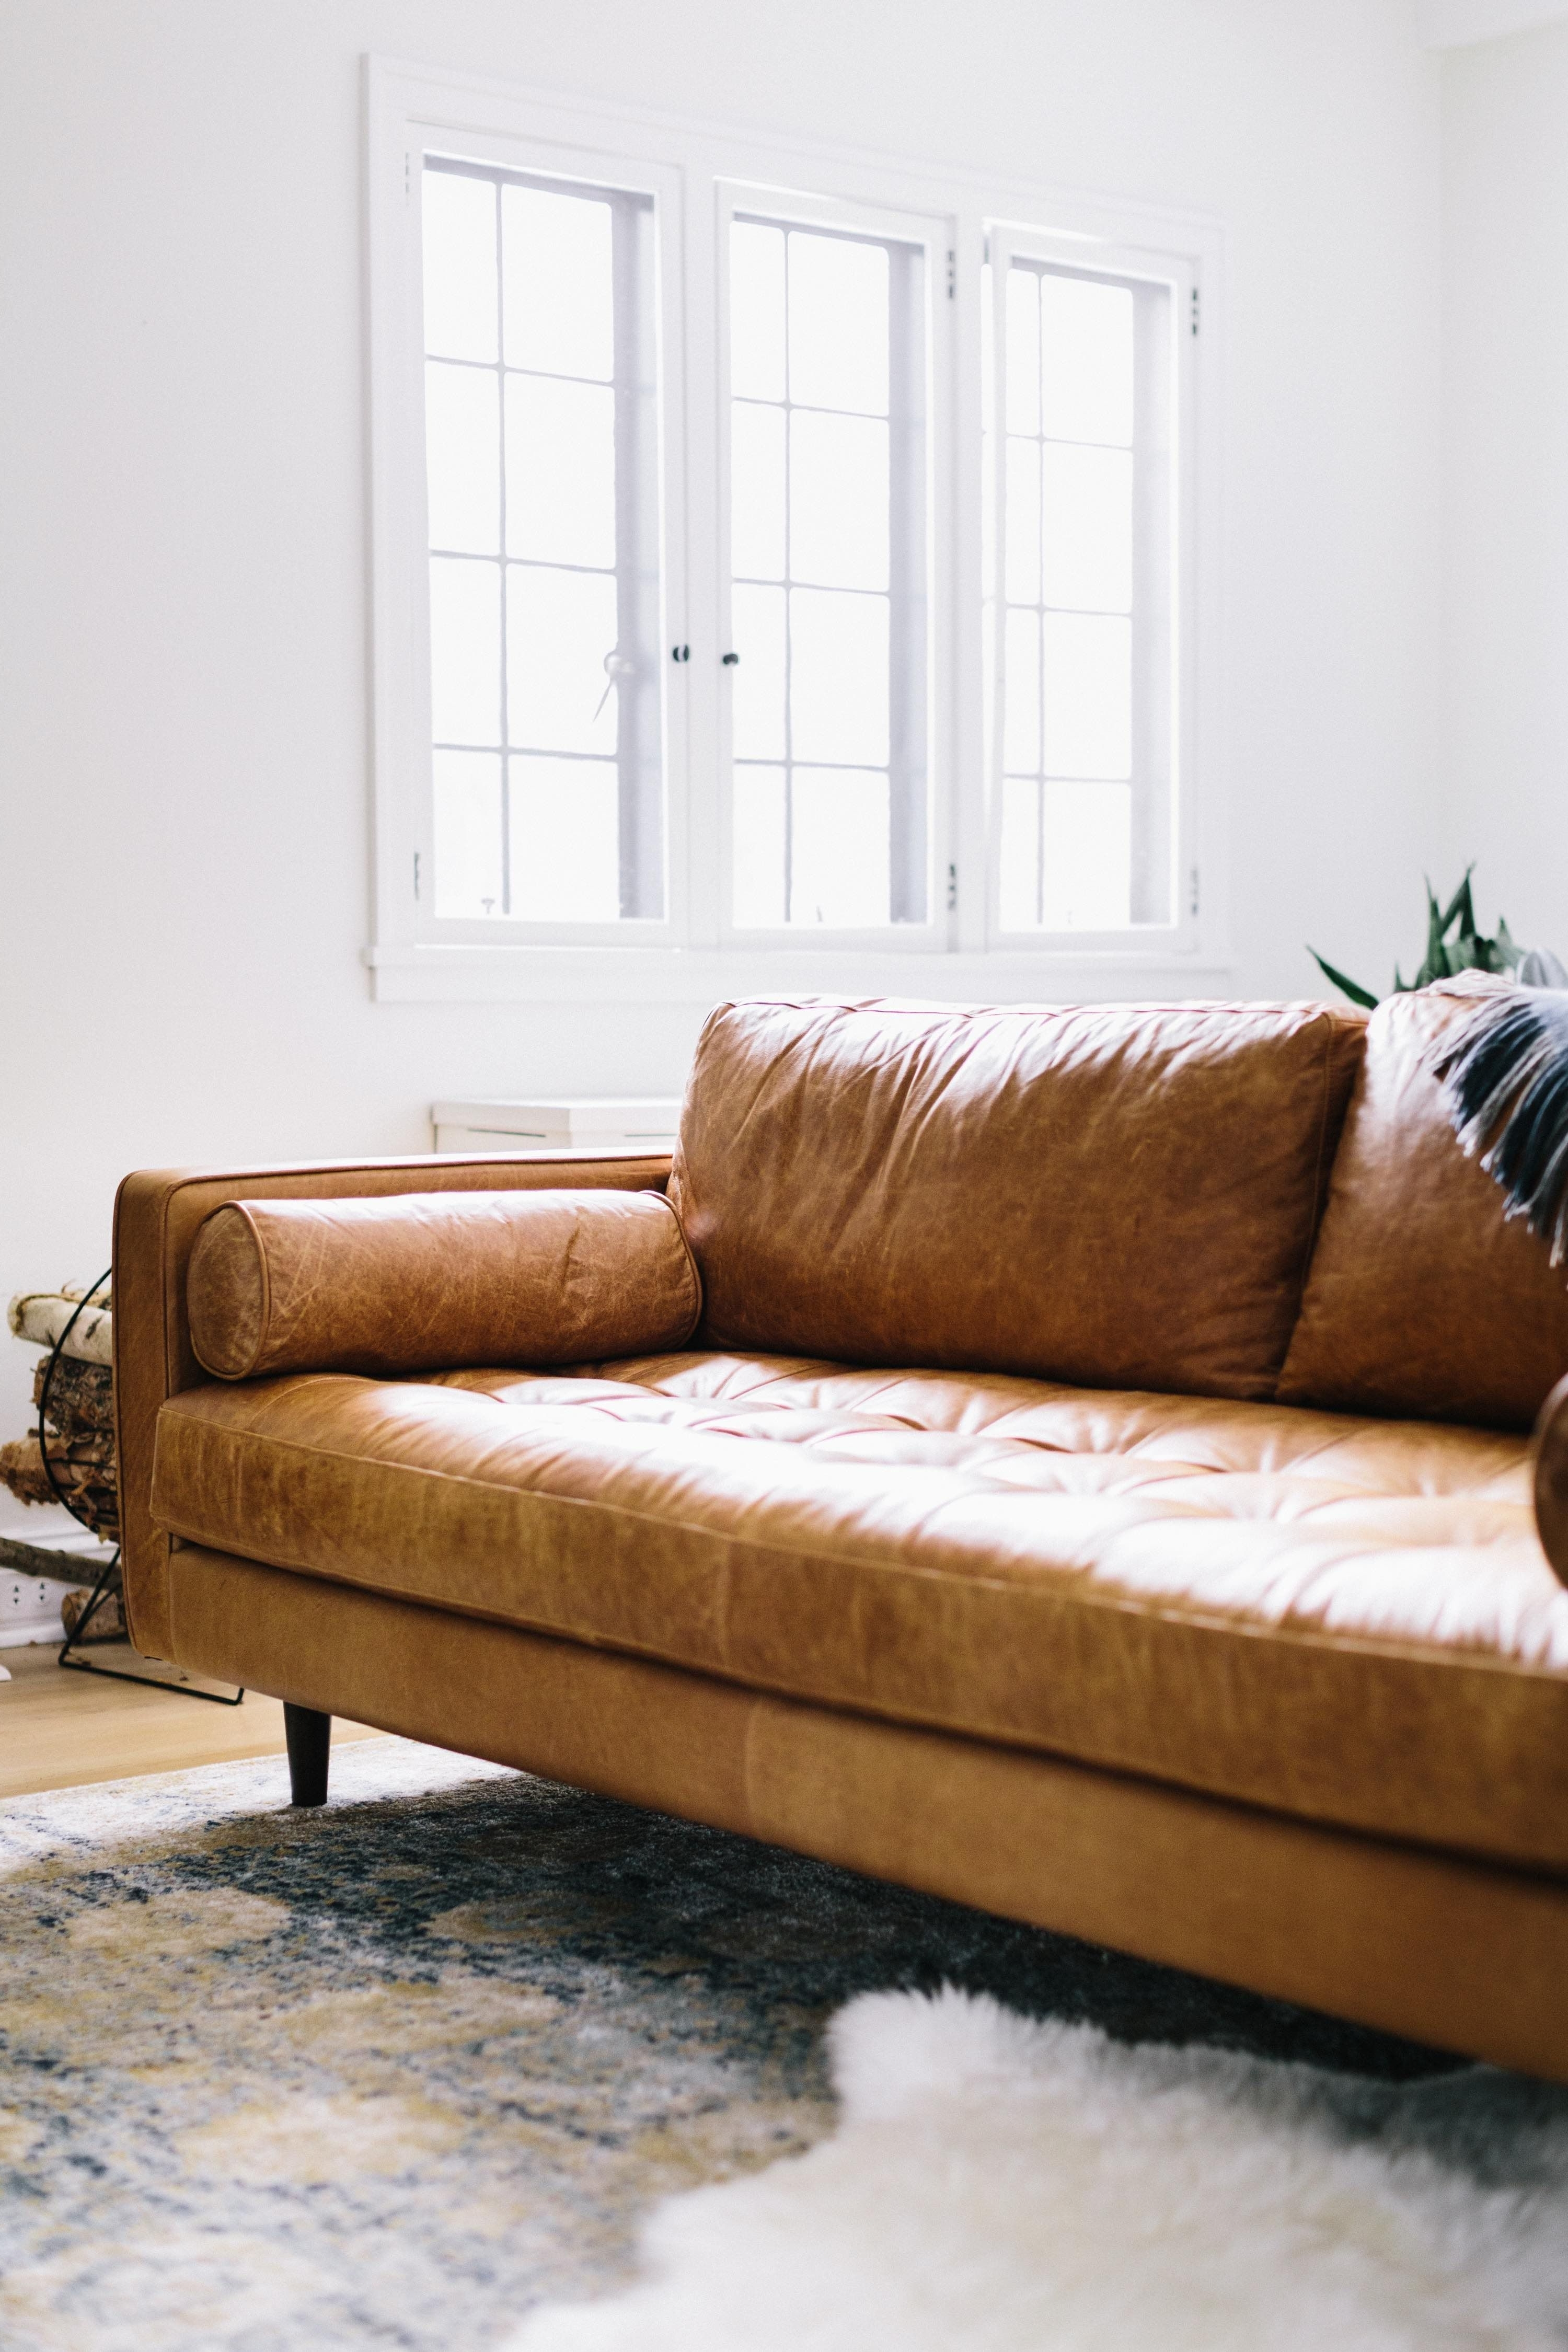 Couch Goals (View 7 of 15)